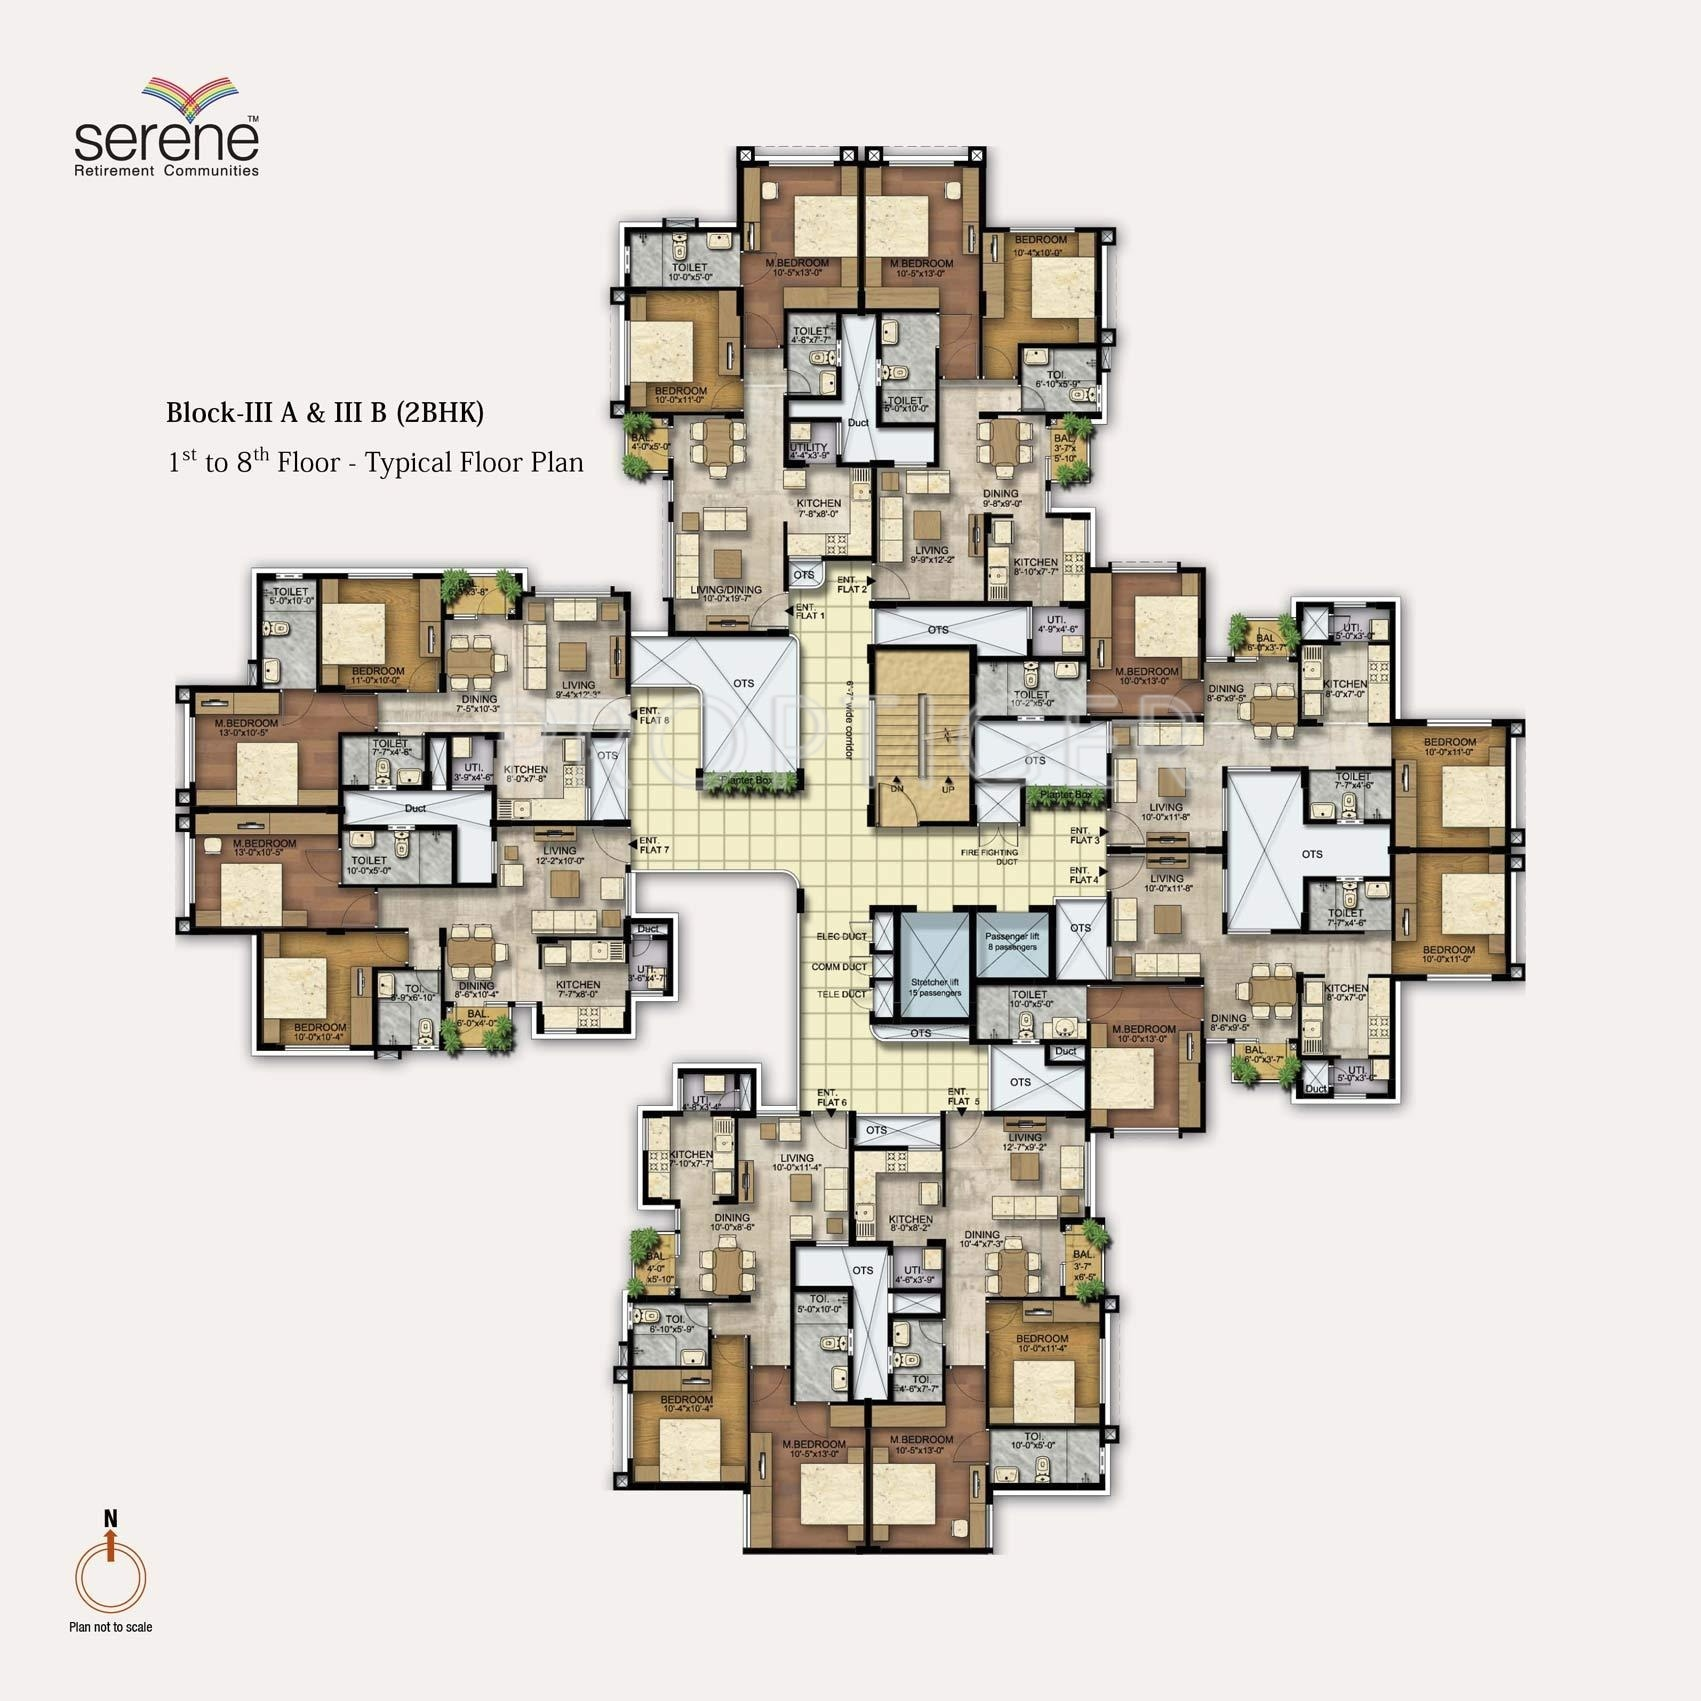 635 Sq Ft 1 Bhk 1t Apartment For Sale In Ozone Group Serene Urbana Devanahalli Bangalore